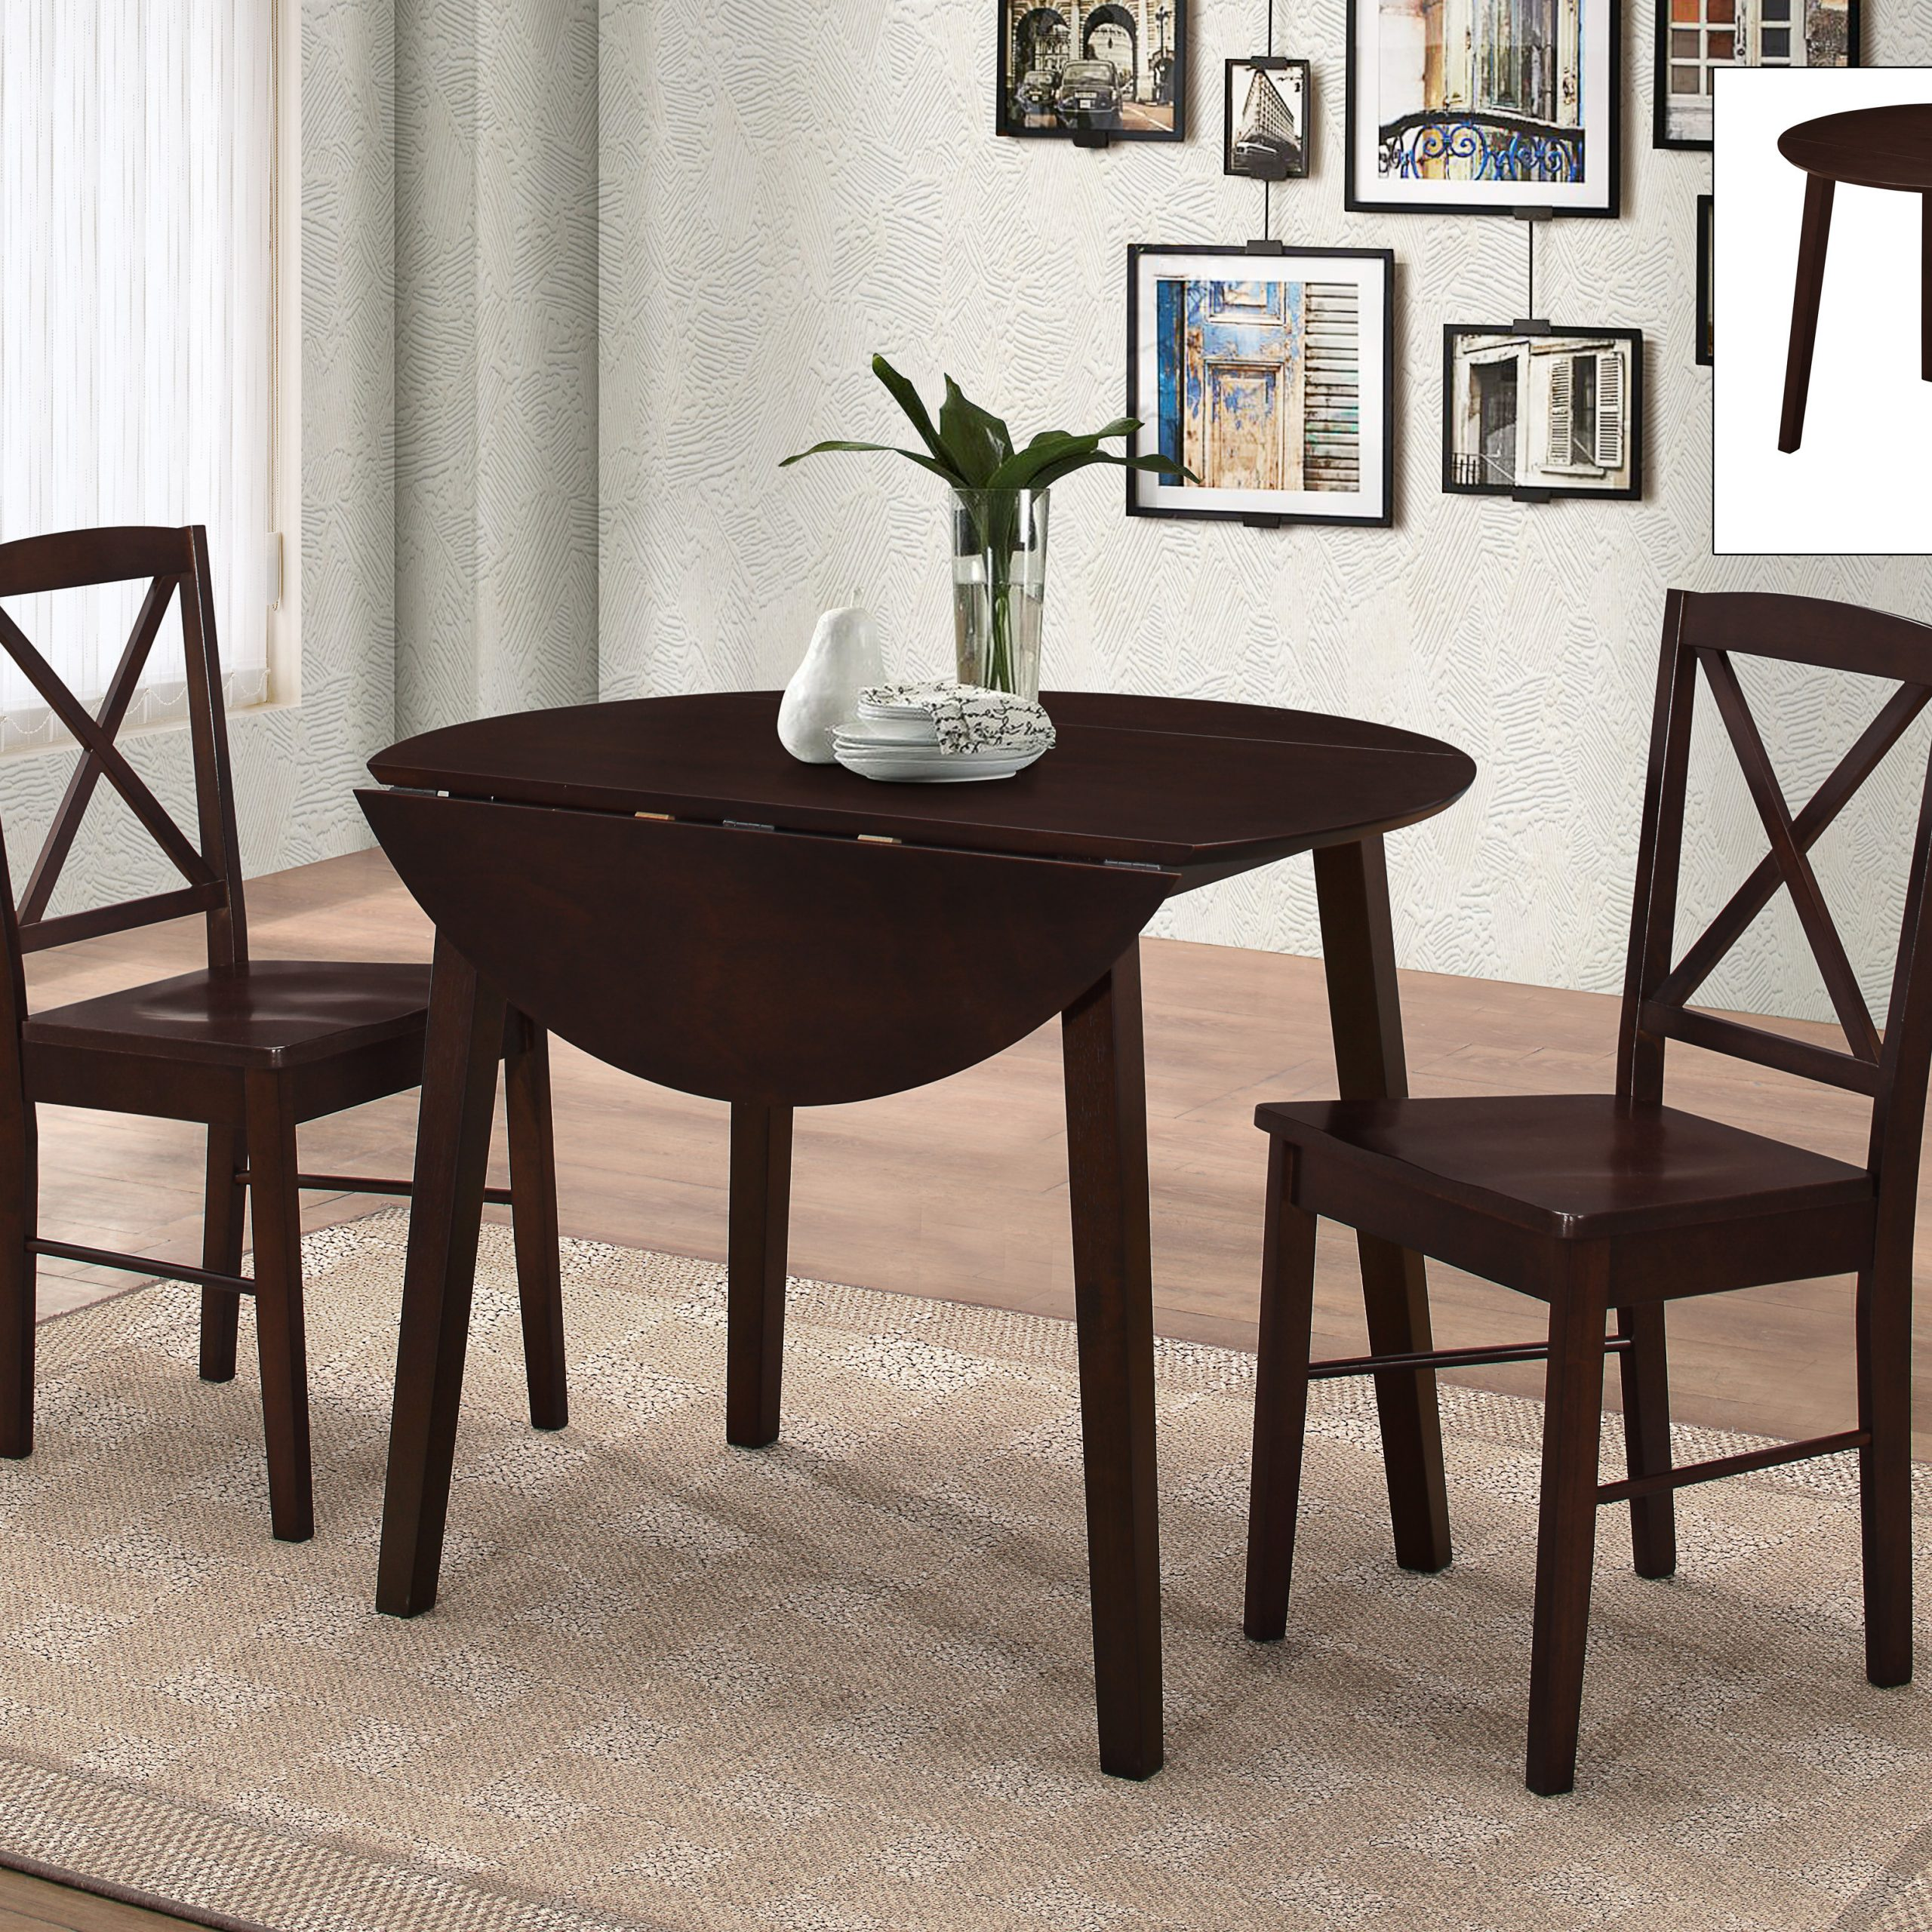 Gaines 3 Piece Kitchen Dining Set, Cappuccino Wood, 39 Throughout Latest Transitional 3 Piece Drop Leaf Casual Dining Tables Set (View 8 of 25)